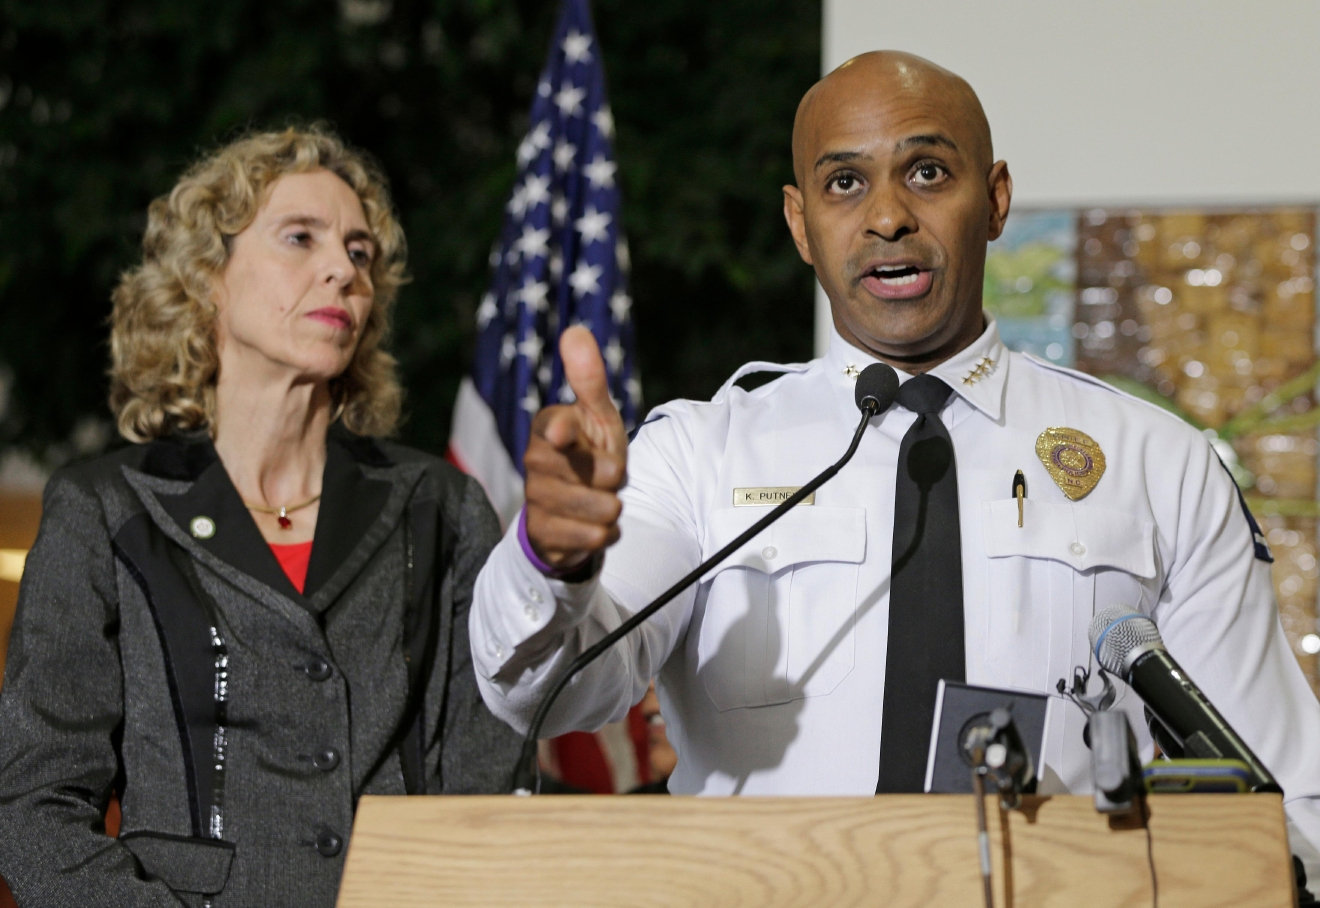 Charlotte-Mecklenburg Police chief Police Chief Kerr Putney, right, gestures as he answers a question as Charlotte mayor Jennifer Roberts, left, watches during a news conference after a second night of violence following Tuesday's fatal police shooting of Keith Lamont Scott in Charlotte, N.C. Thursday, Sept. 22, 2016. (AP Photo/Chuck Burton)